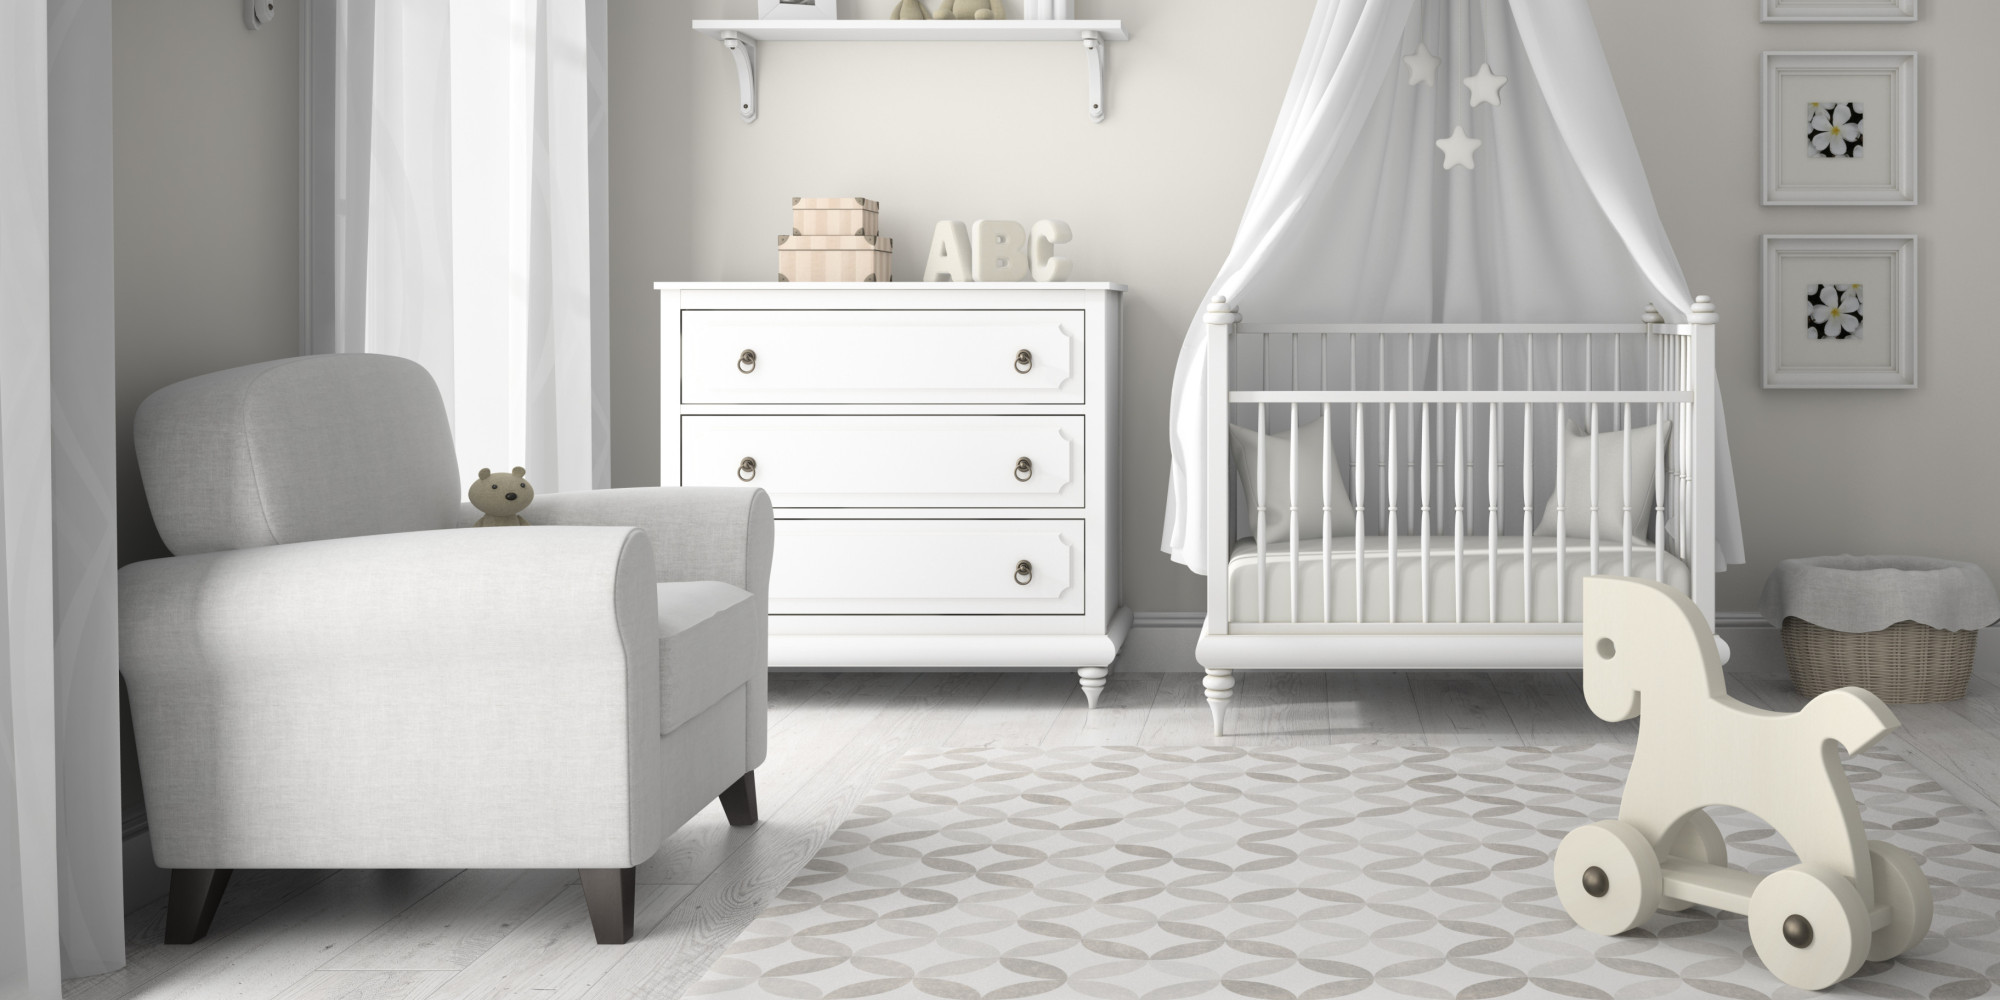 How to decorate your baby 39 s nursery in a day huffpost uk Baby designs for rooms